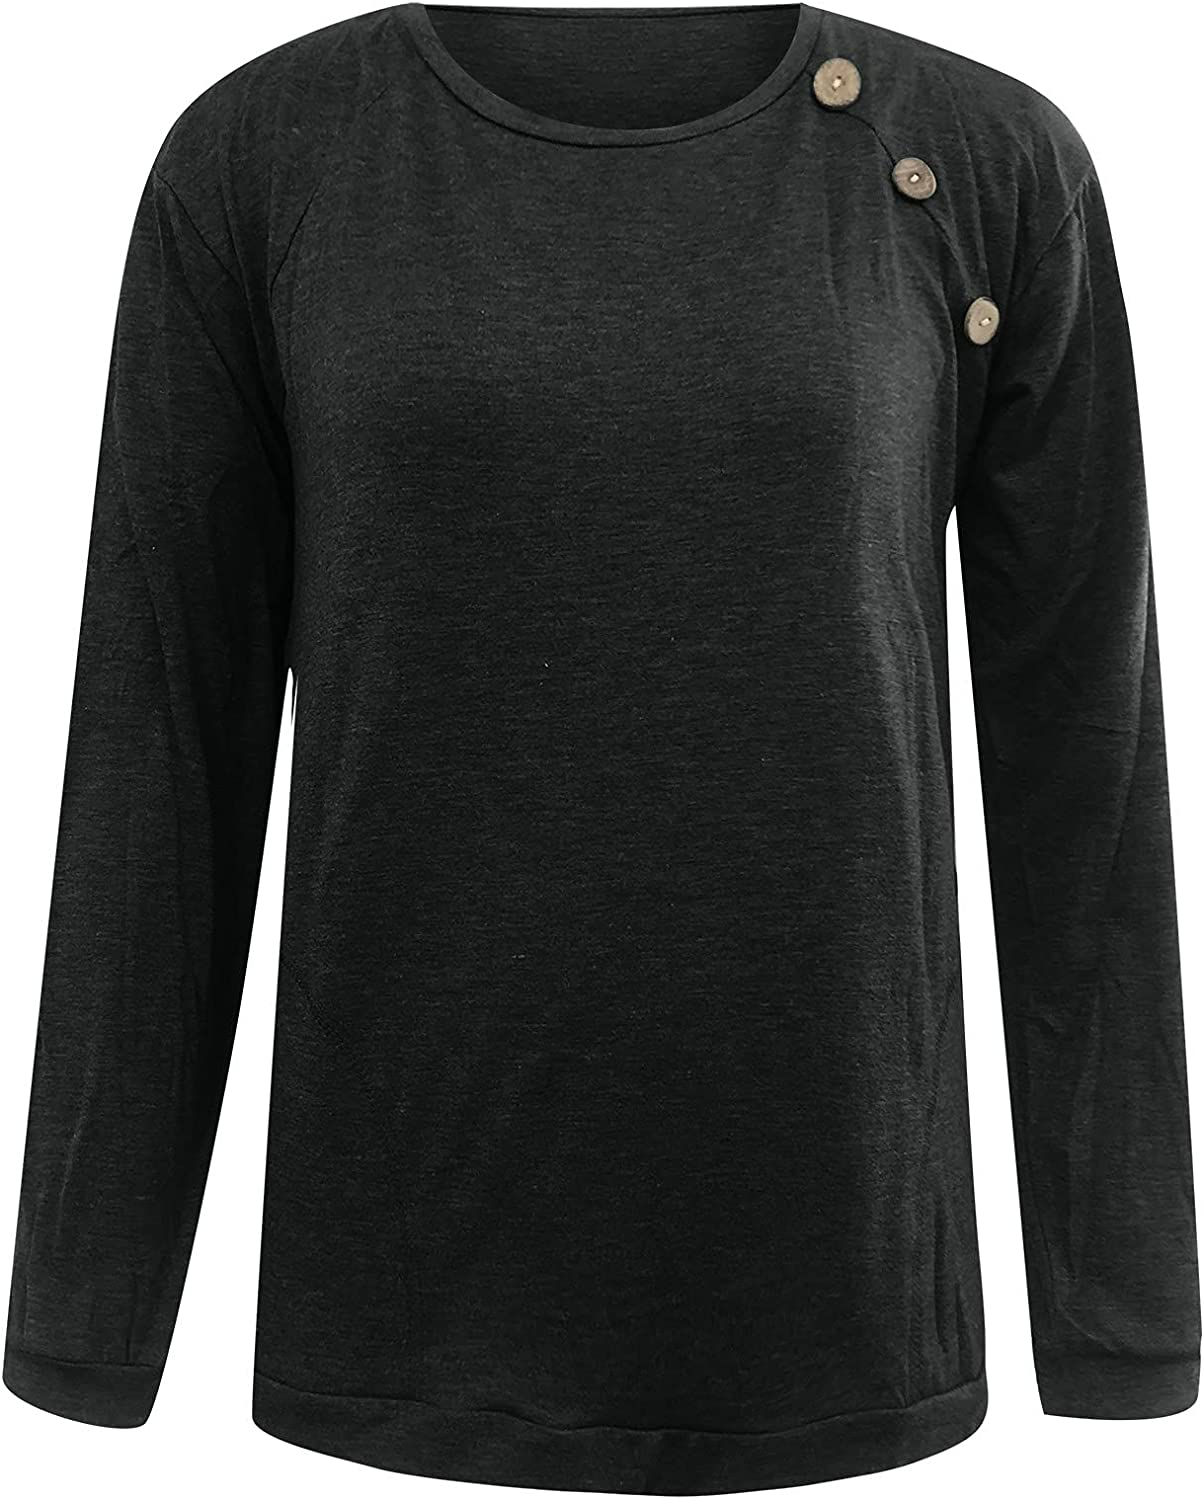 VonVonCo Pullover Sweaters for Women Ladies Casual Pure Color with Pockets Round Neck Loose Blouses Long Sleeve Button Top